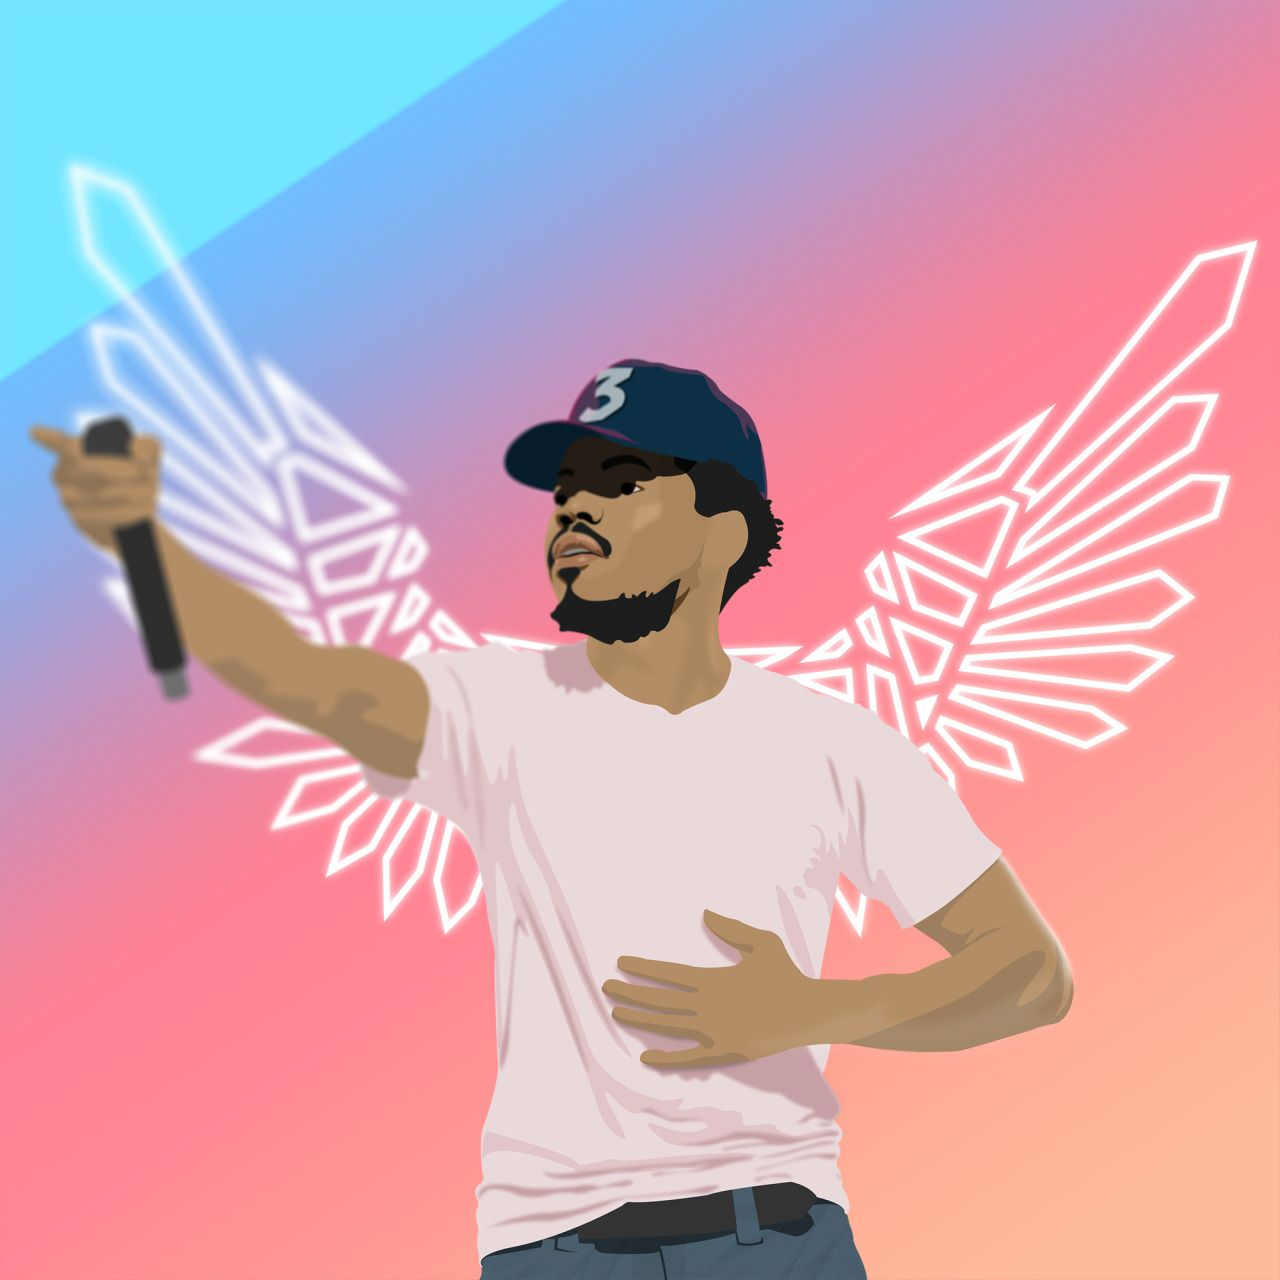 Scot Vs Time Chance Rapper Art Chance The Rapper Wallpaper Chance The Rapper Art